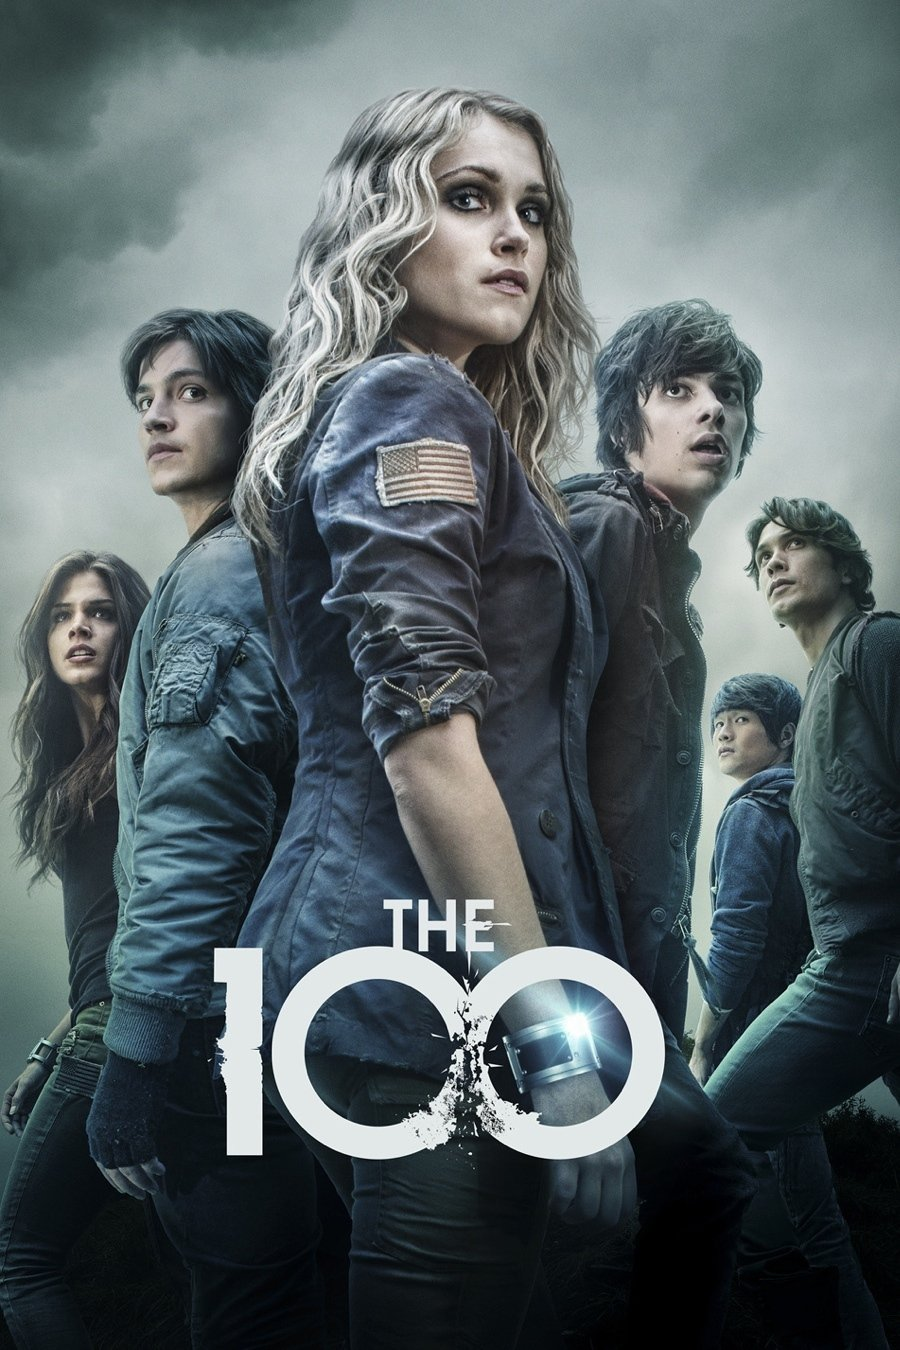 Film Series The 100 Season 2 (2014) (Complete)